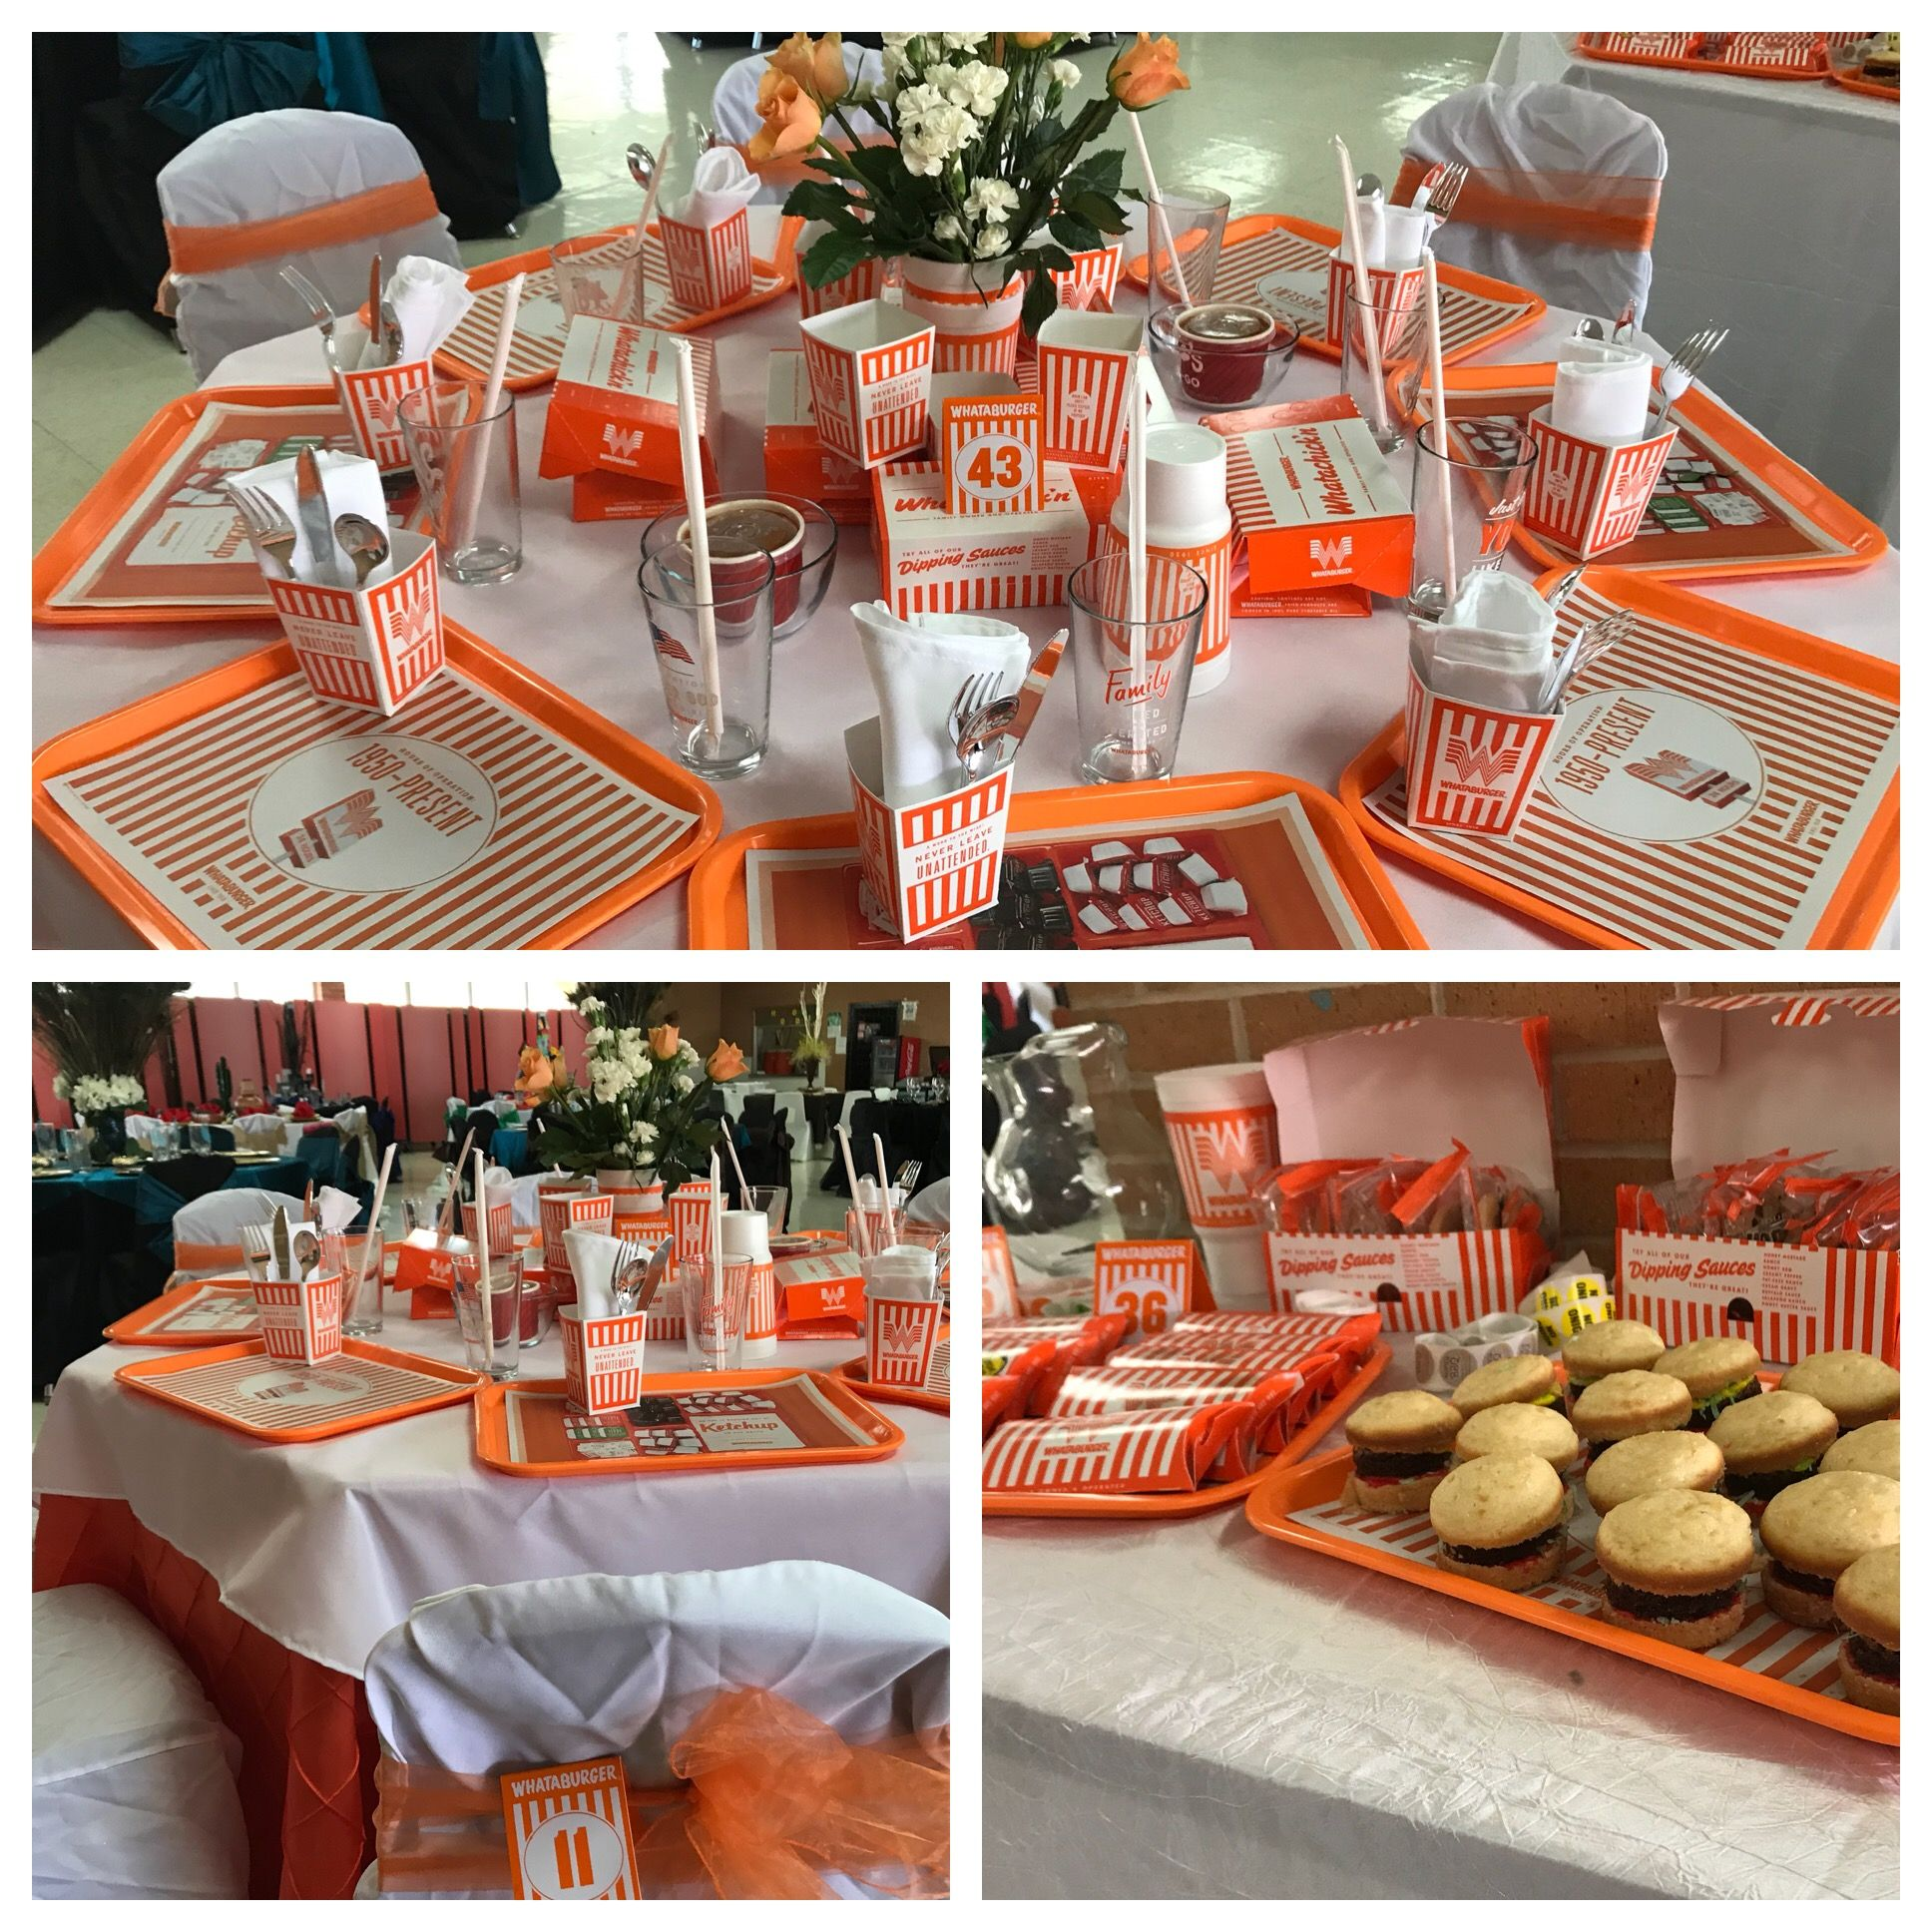 Whataburger Table Dinner Theater Table Party Table Senior